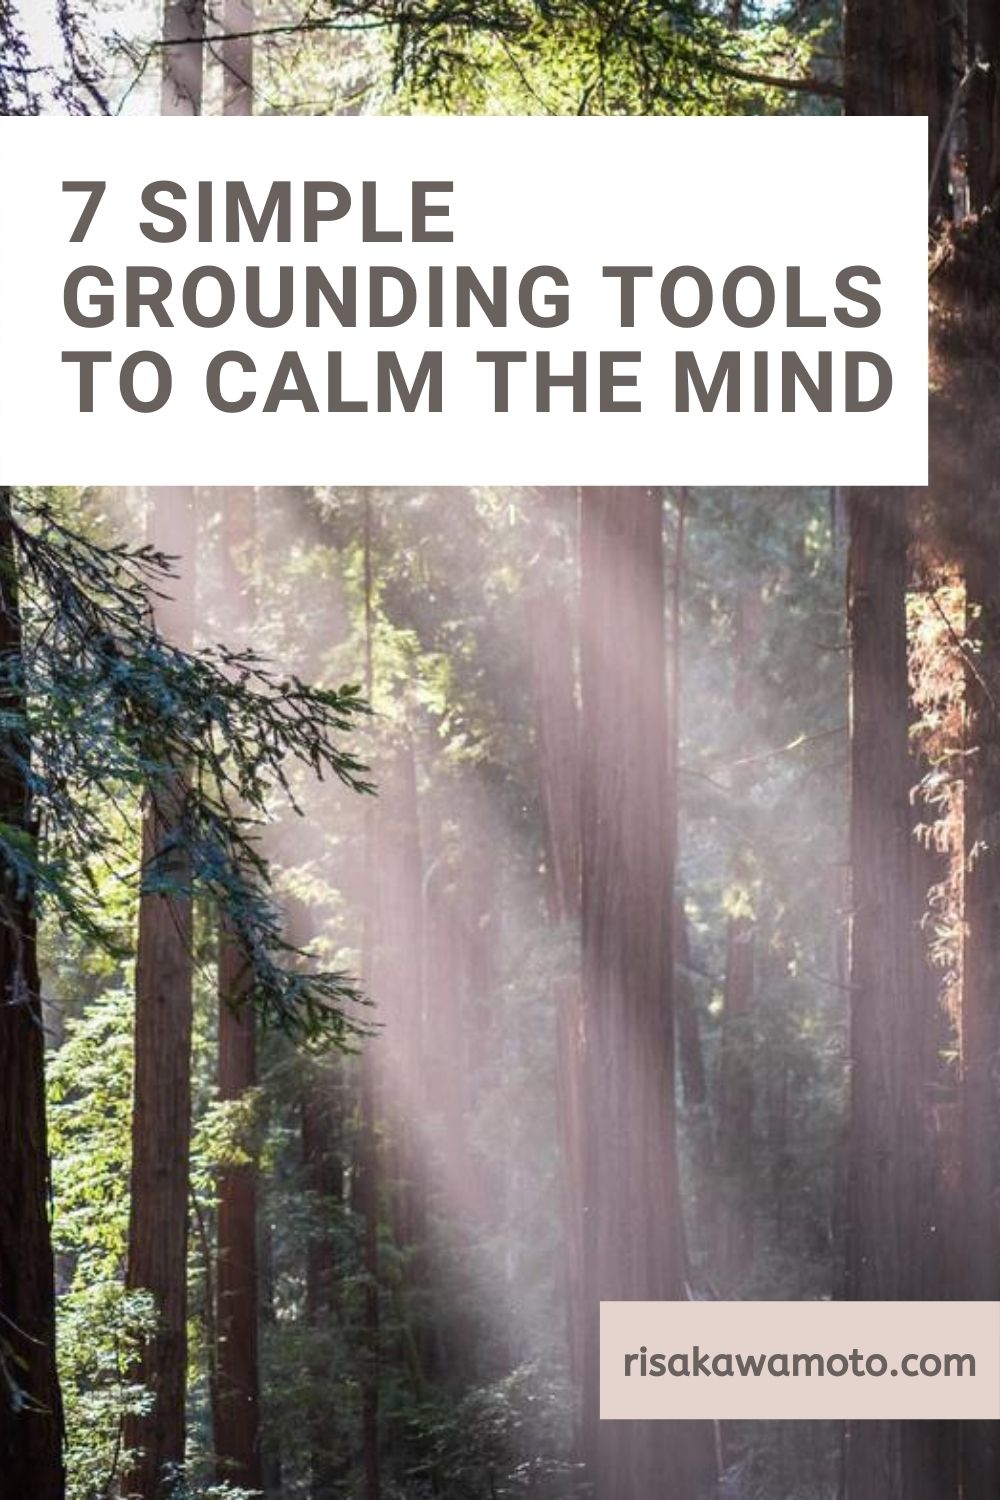 7 Simple Grounding Tools to Calm the Mind